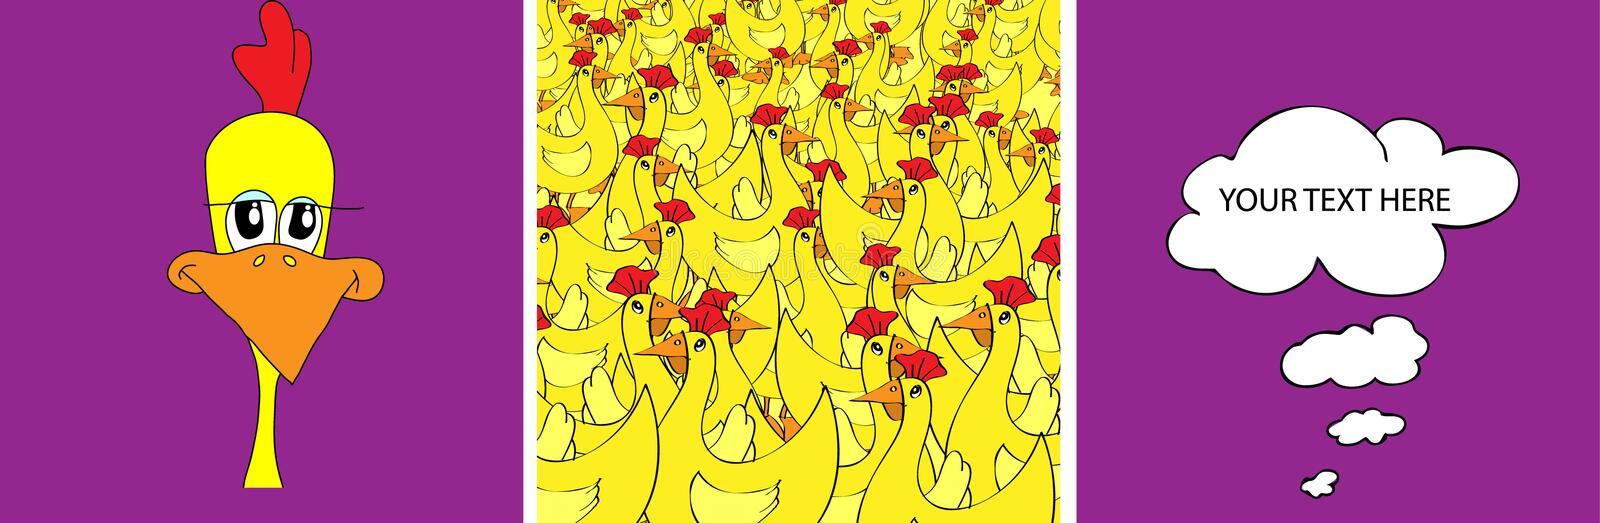 and chicken royalty free illustration